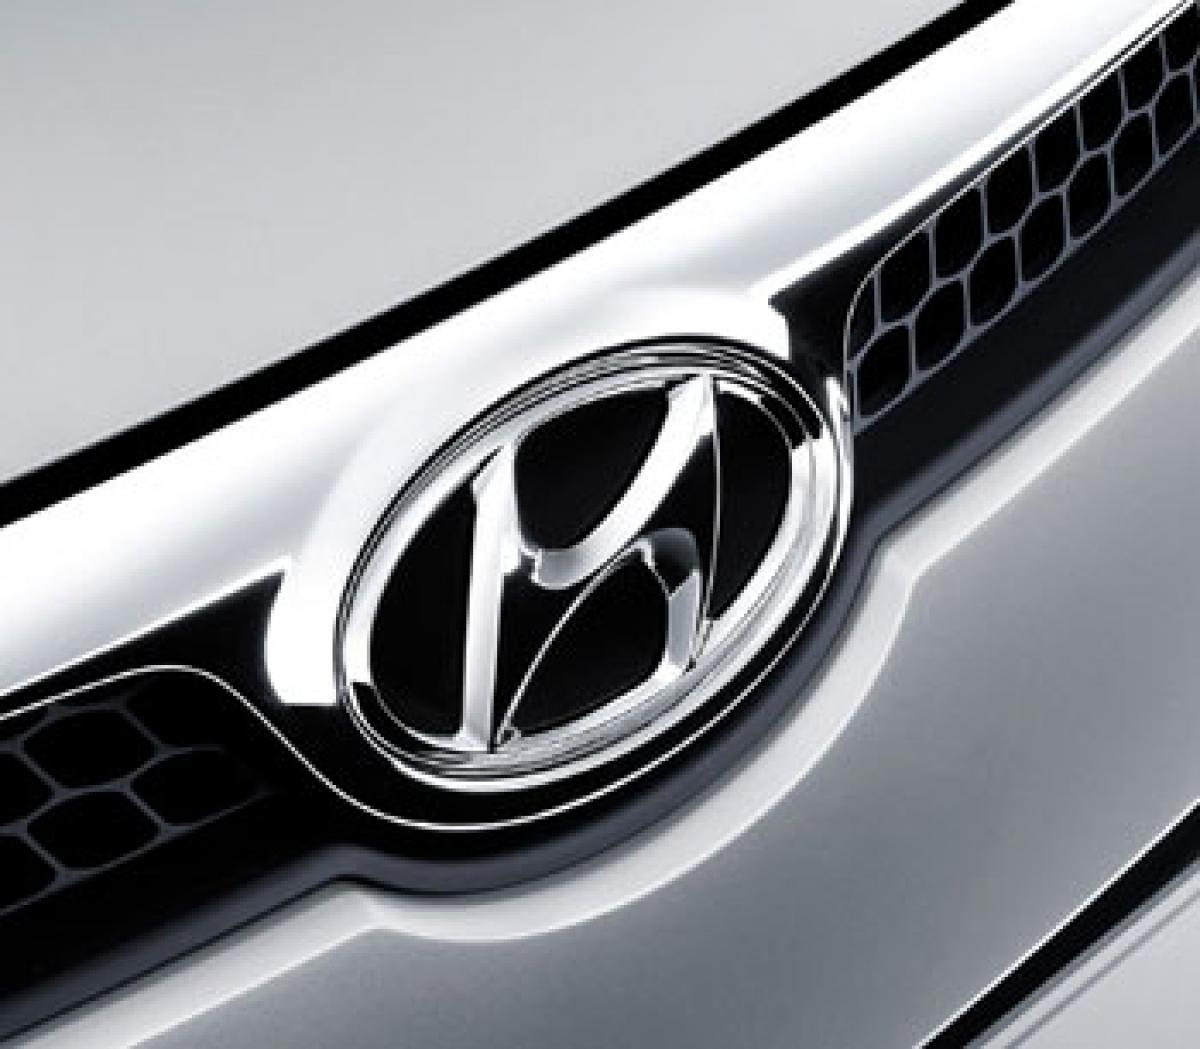 Hyundai to develop new hydrogen fuel cell SUV